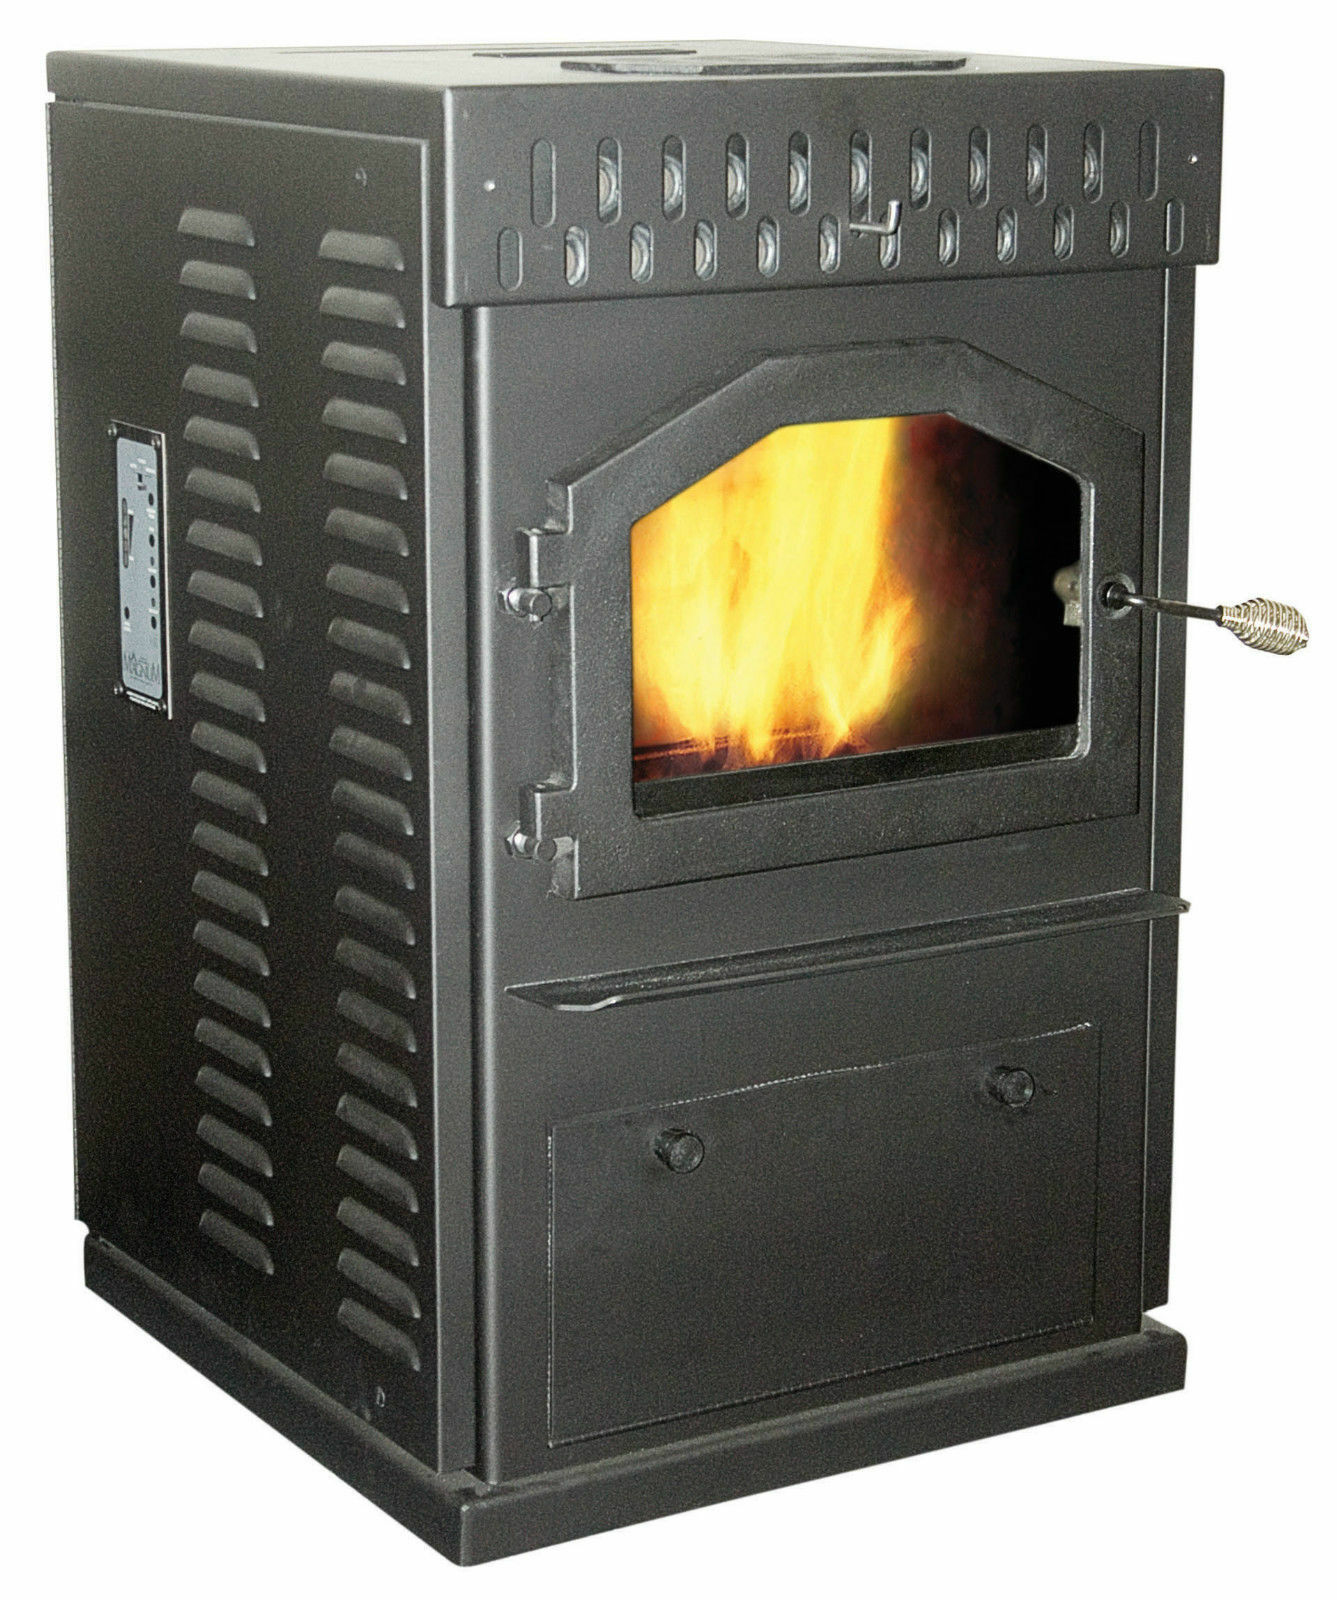 Top 10 Pellet Stoves | eBay